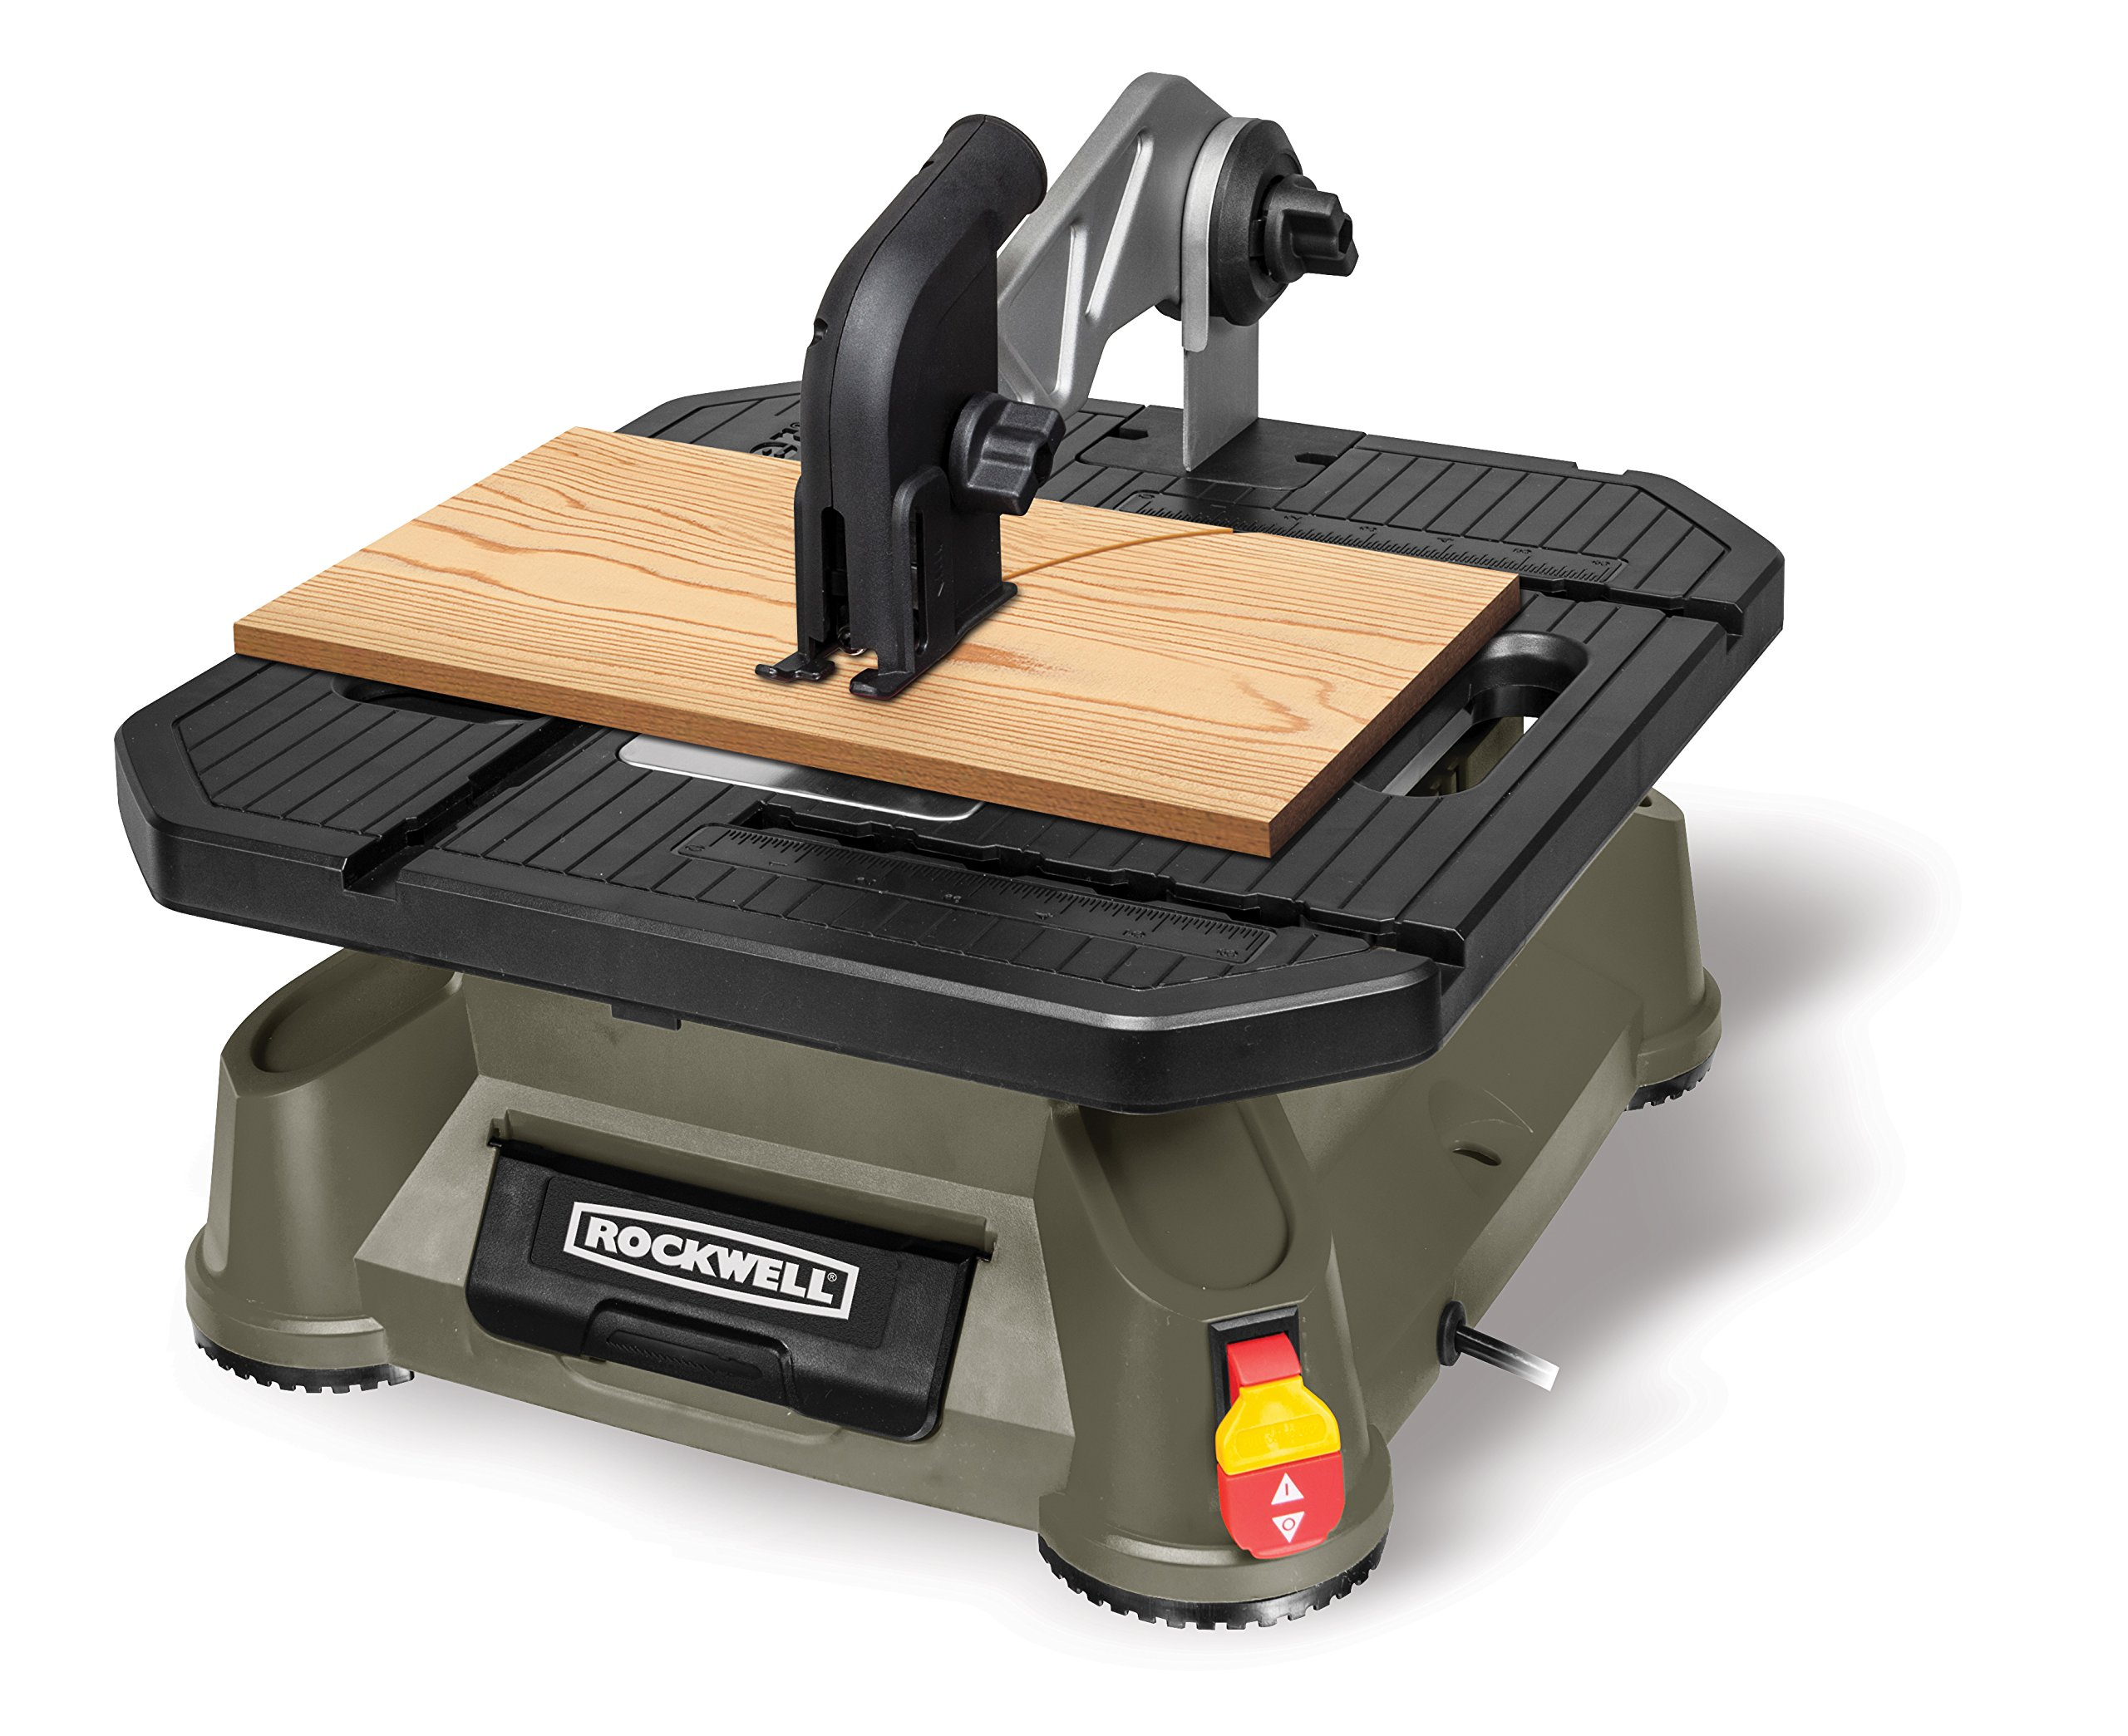 Rockwell BladeRunner X2 Portable Tabletop Saw with Steel Rip Fence, Miter Gauge, and 7 Accessories - RK7323 by Rockwell